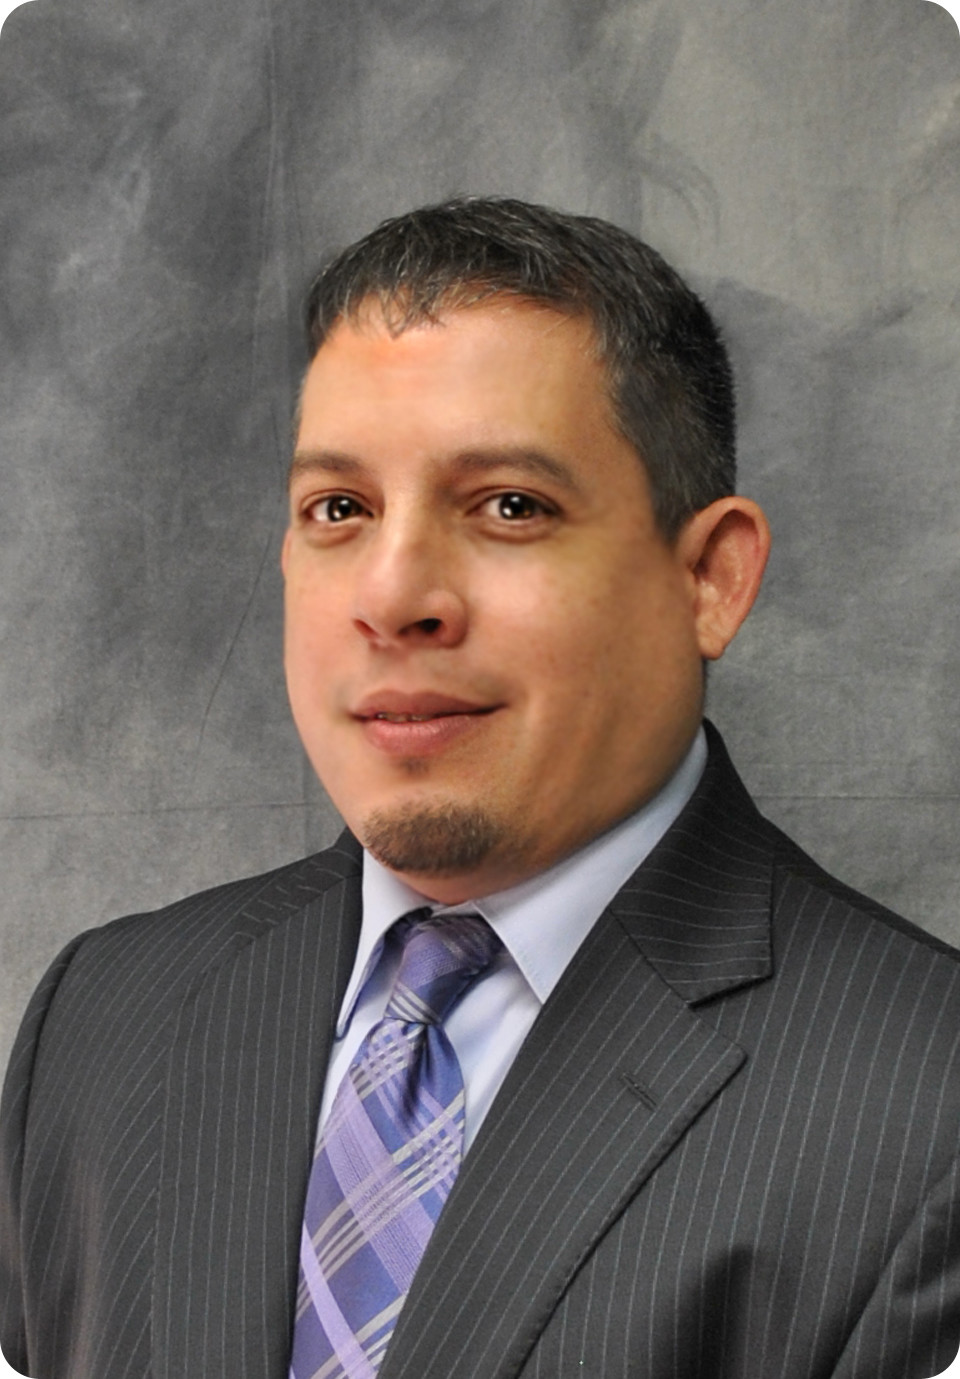 Steven Sissac, CPA, Accounting Services